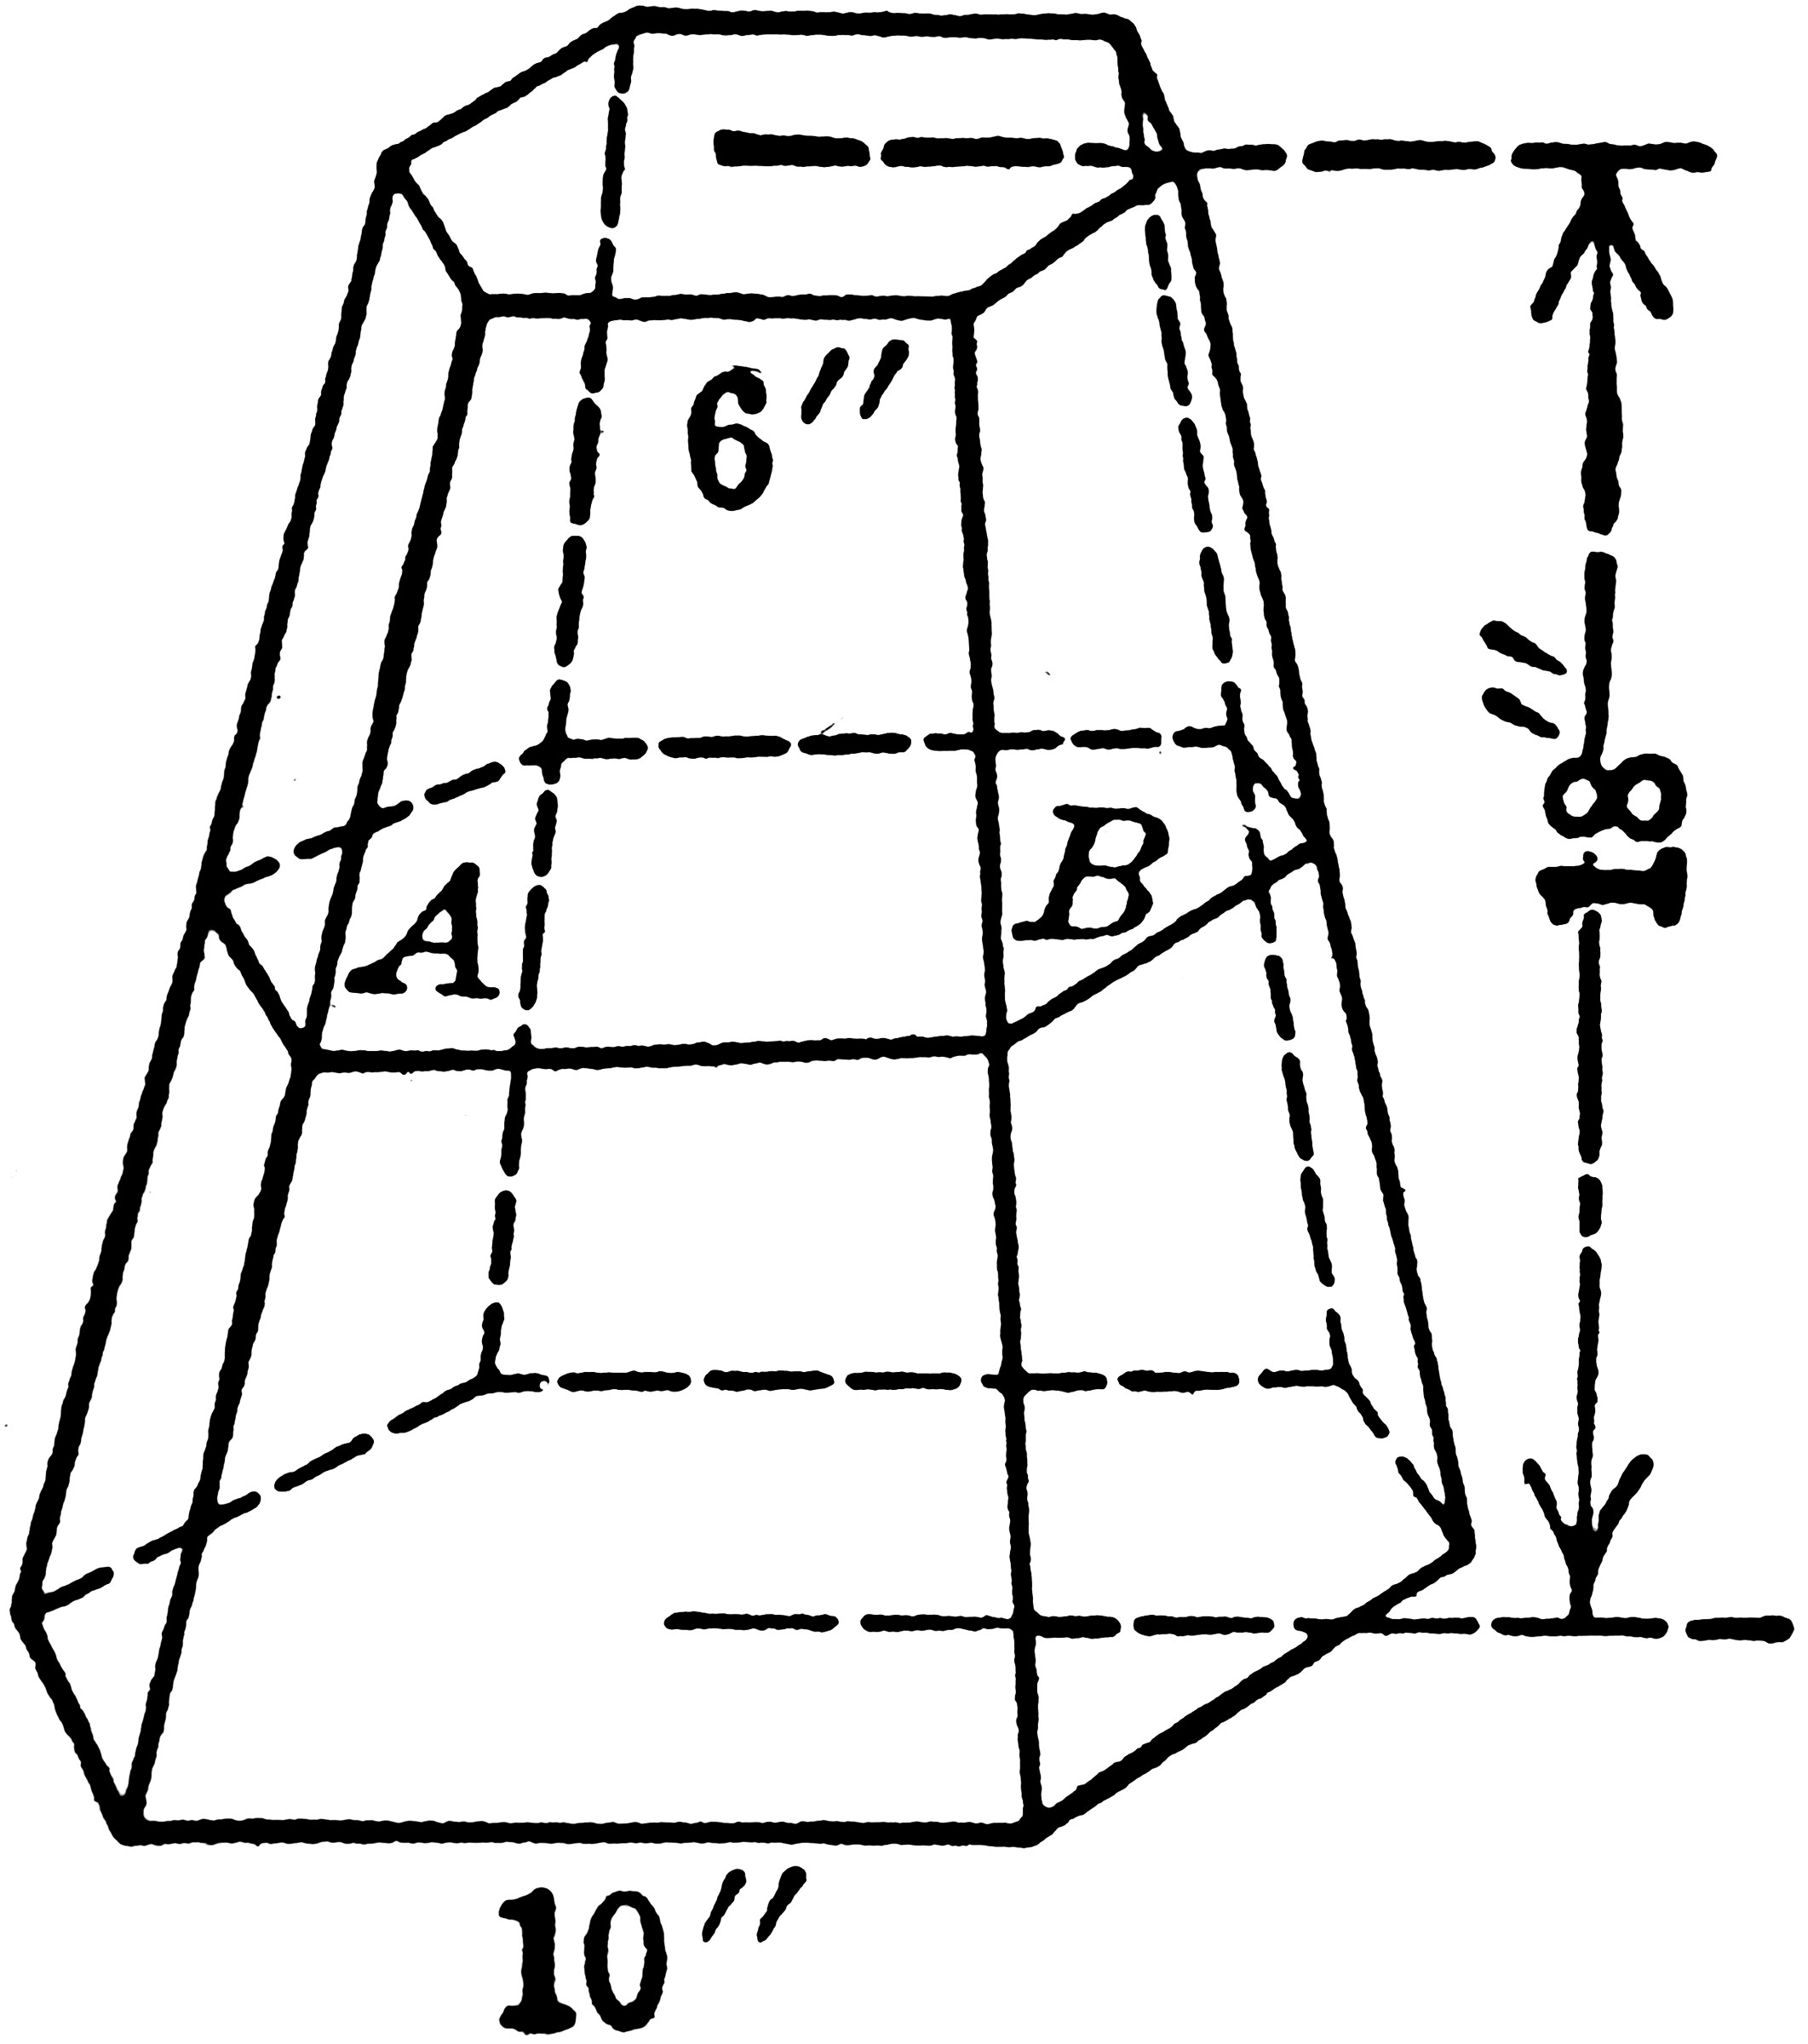 Pyramid Frustum With Hexagonal Bases and 6 inch and 10